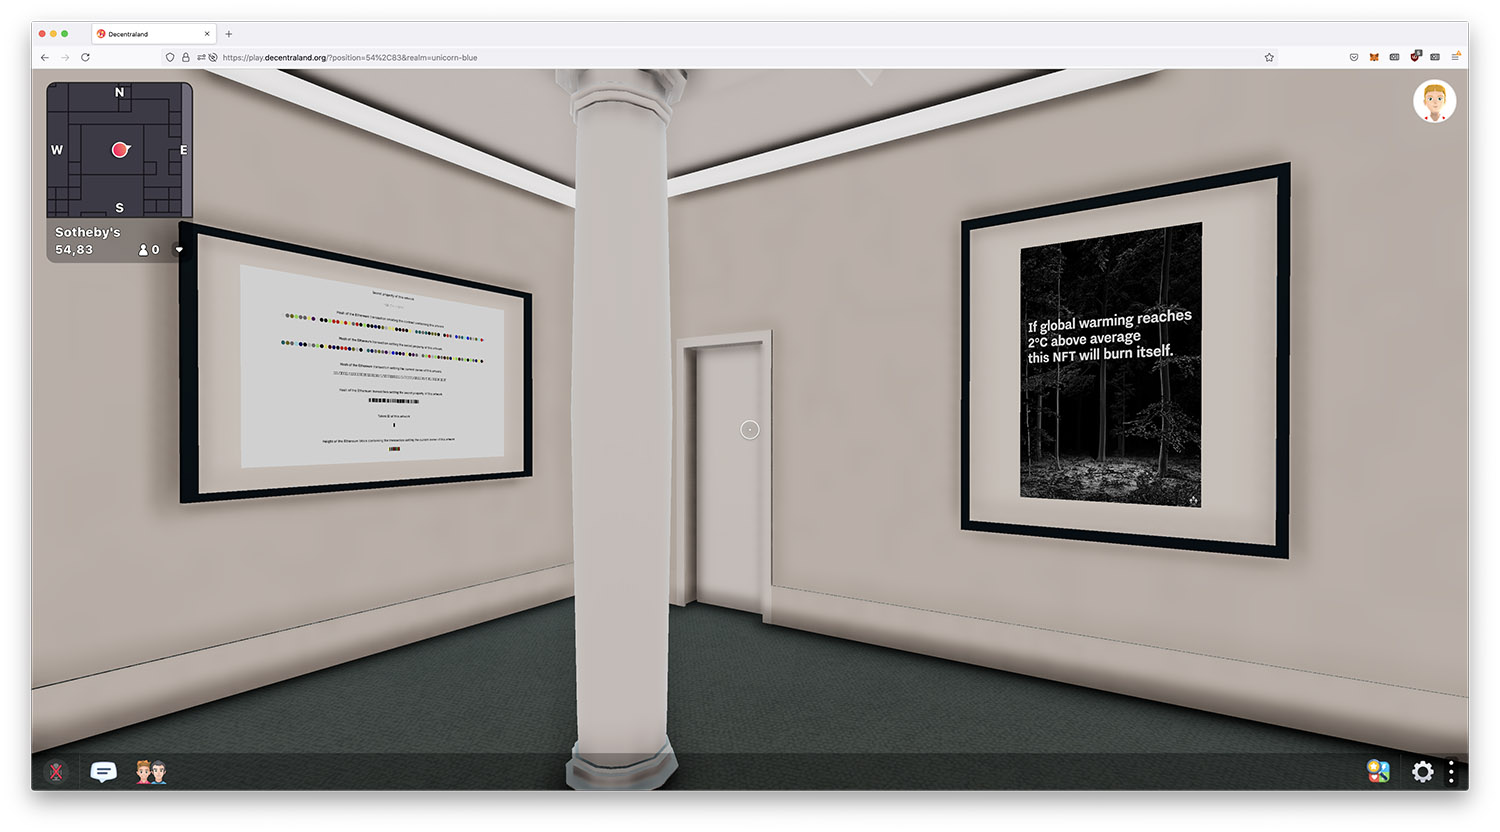 terra0's 'Two Degrees' NFT (right) in Sotheby's 'Natively Digital: A Curated NFT Sale' exhibition in decentraland.org